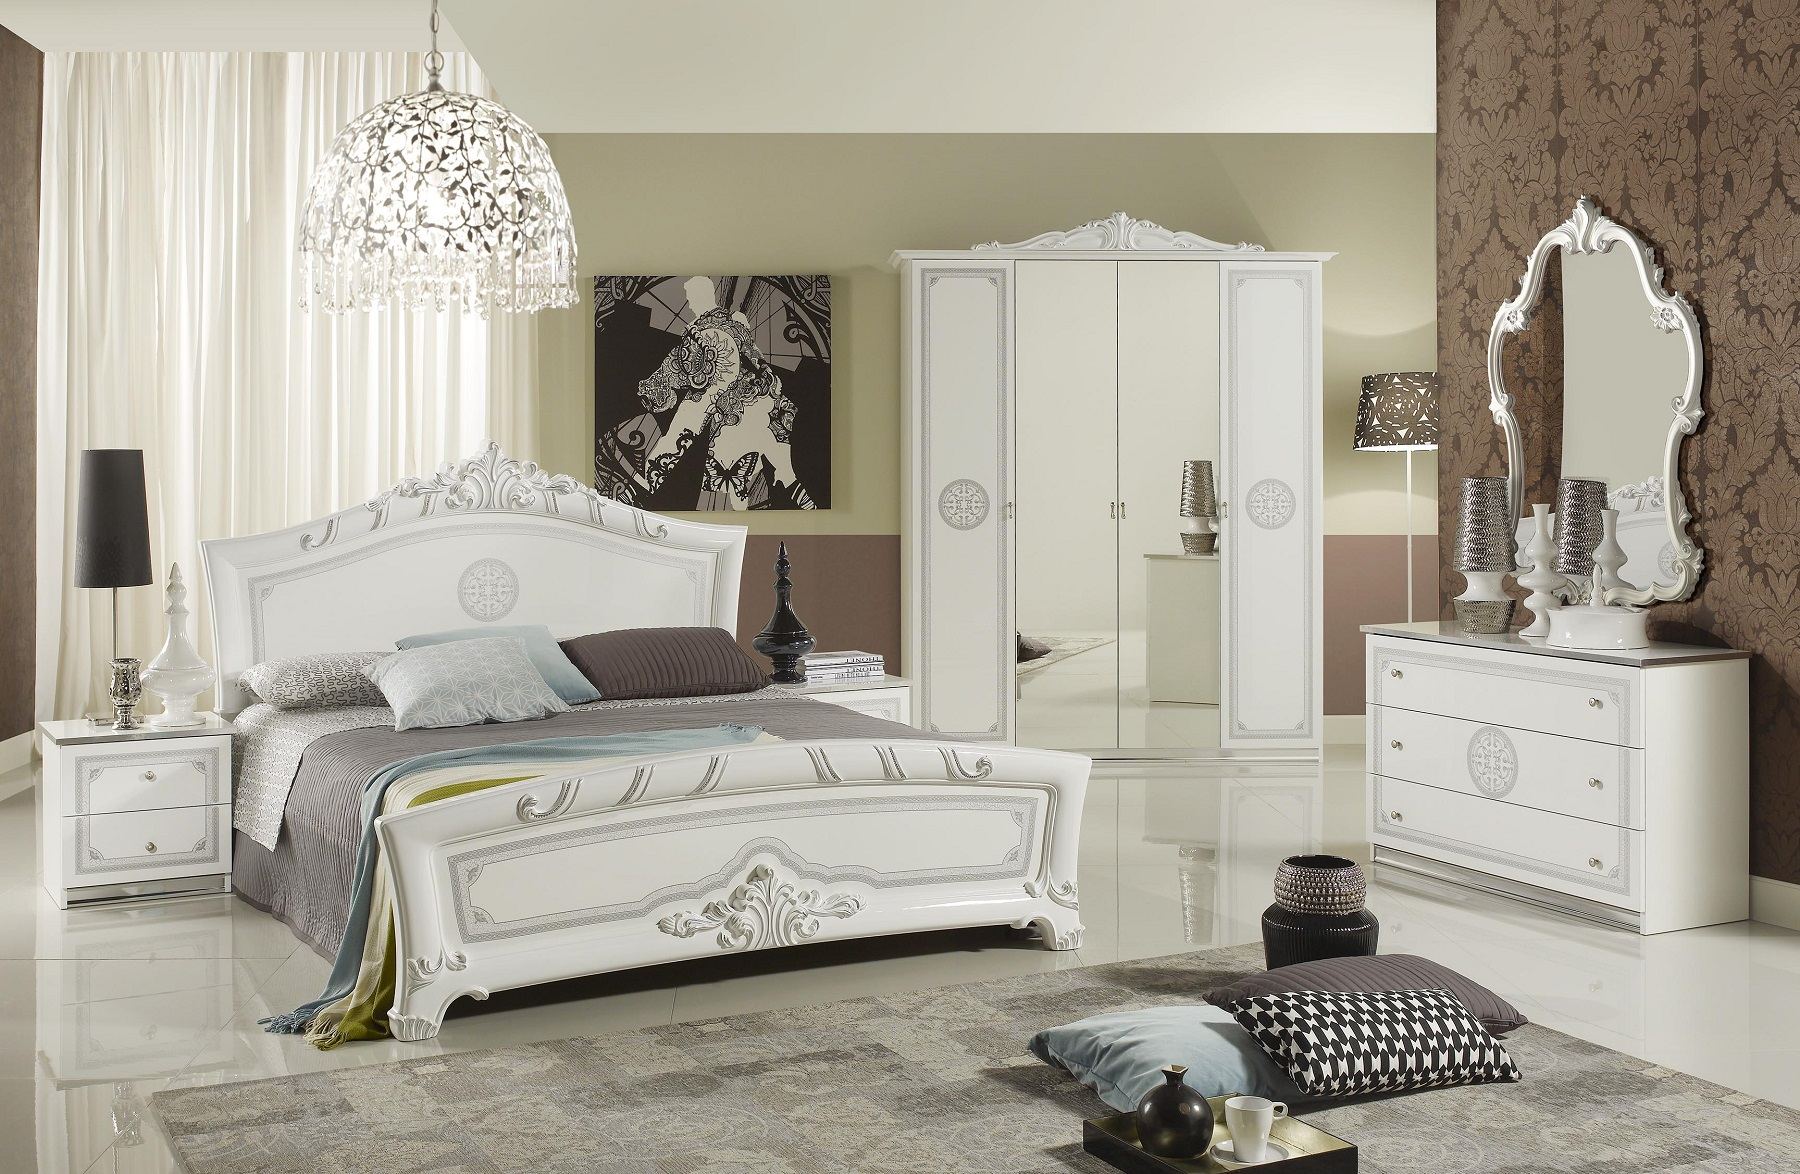 kommode mit spiegel great weiss silber klassik barock italia p pkgrccom1 spw. Black Bedroom Furniture Sets. Home Design Ideas